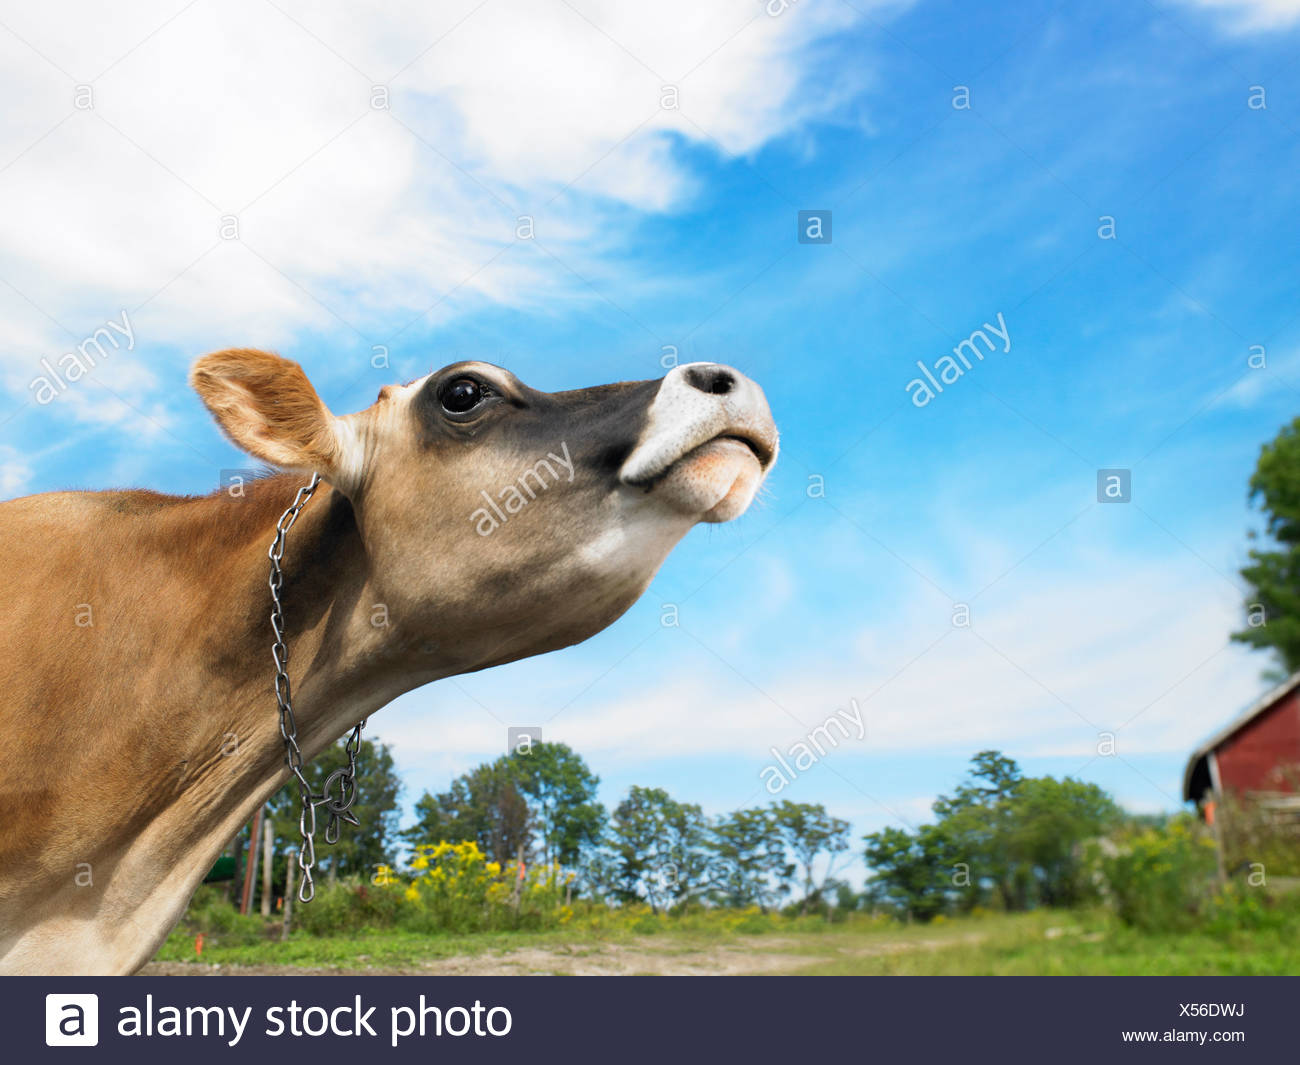 Vache avec le nez en l'air Photo Stock